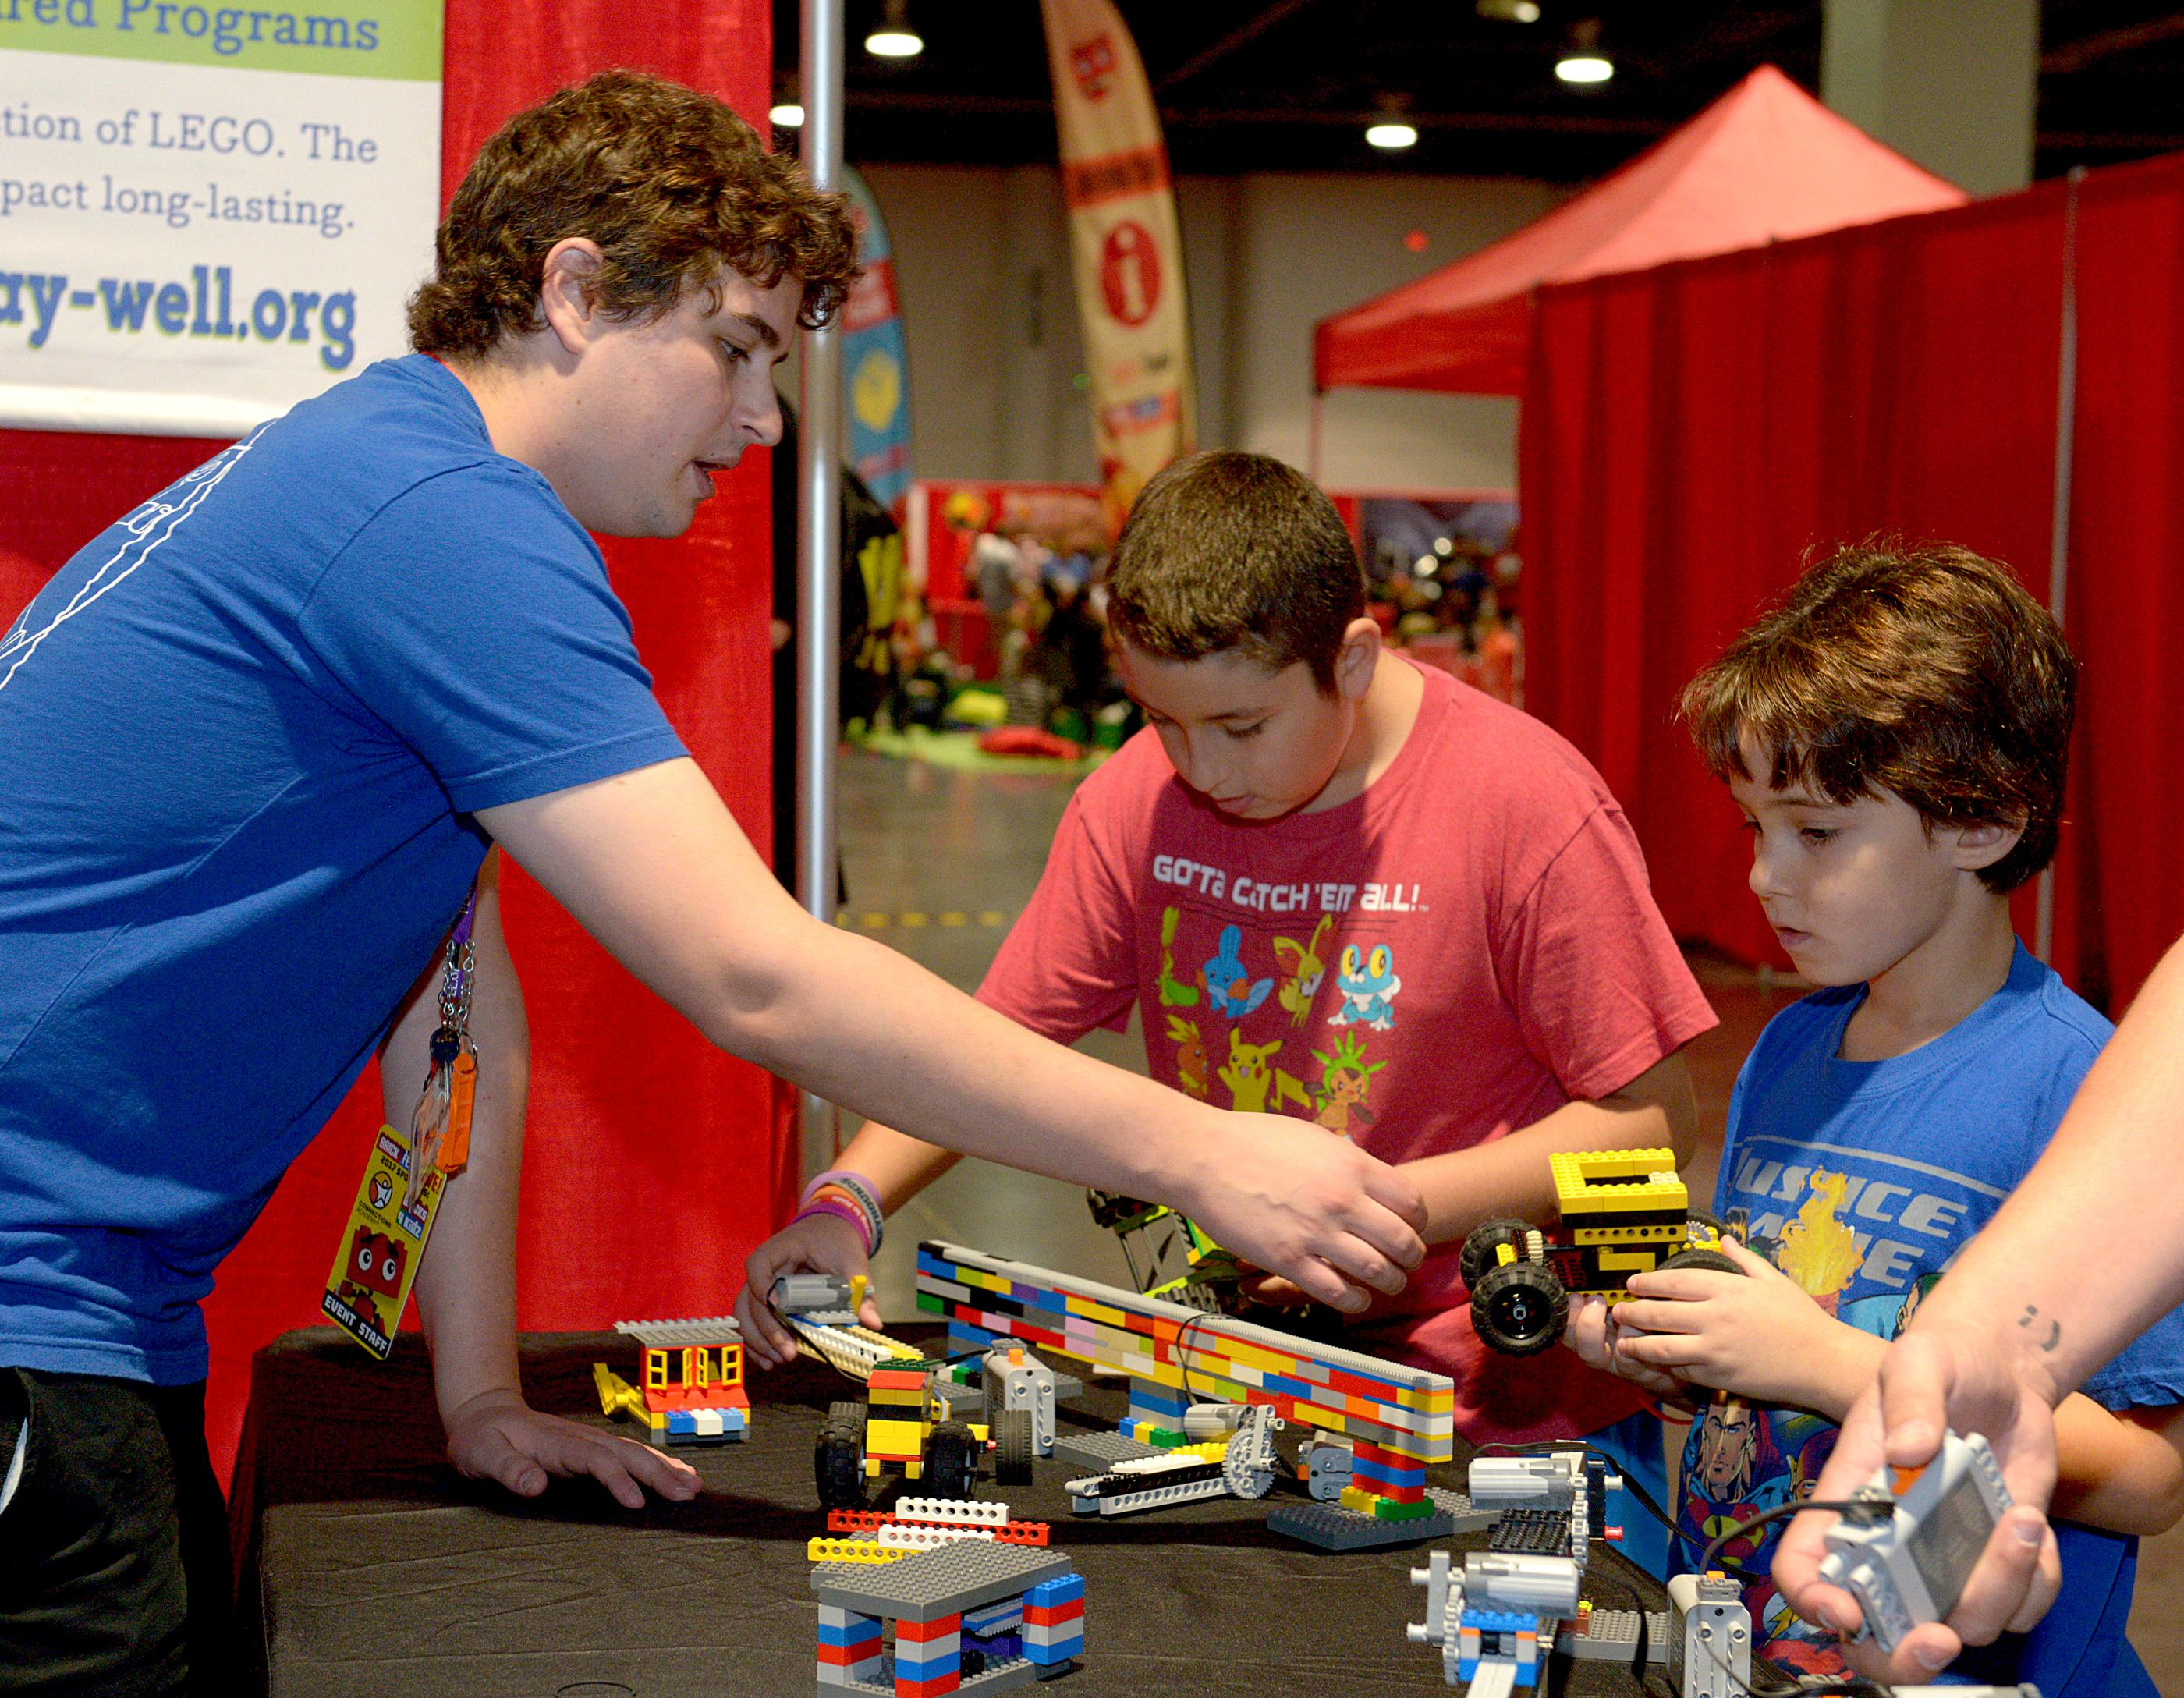 One of the Lego pros shows a young fan how he can attach a motor to his Lego car during the Brick Fest Live Lego Fan Experience at the Las Vegas Convention Center, September 9, 2017. [Glenn Pinkerton/Las Vegas News Bureau]